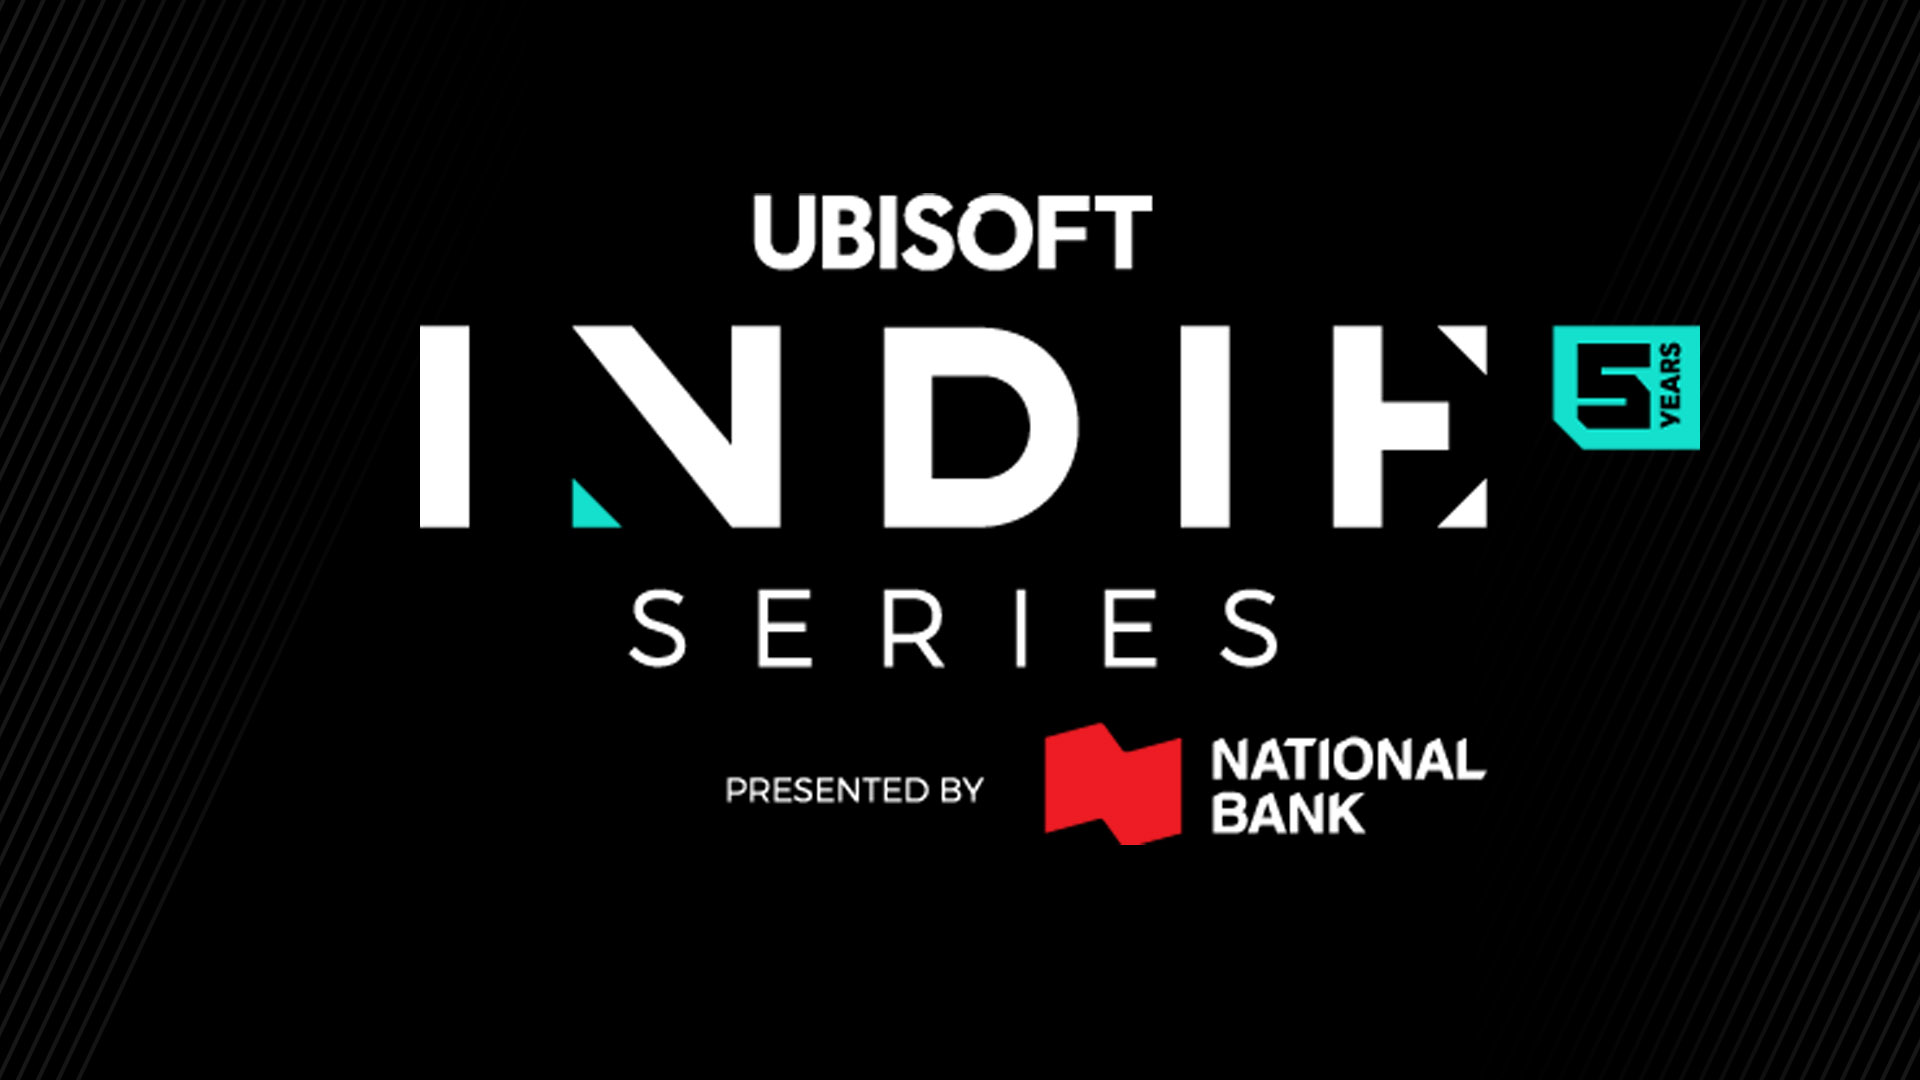 Ubisoft Indie Series Returns for a Fifth Year